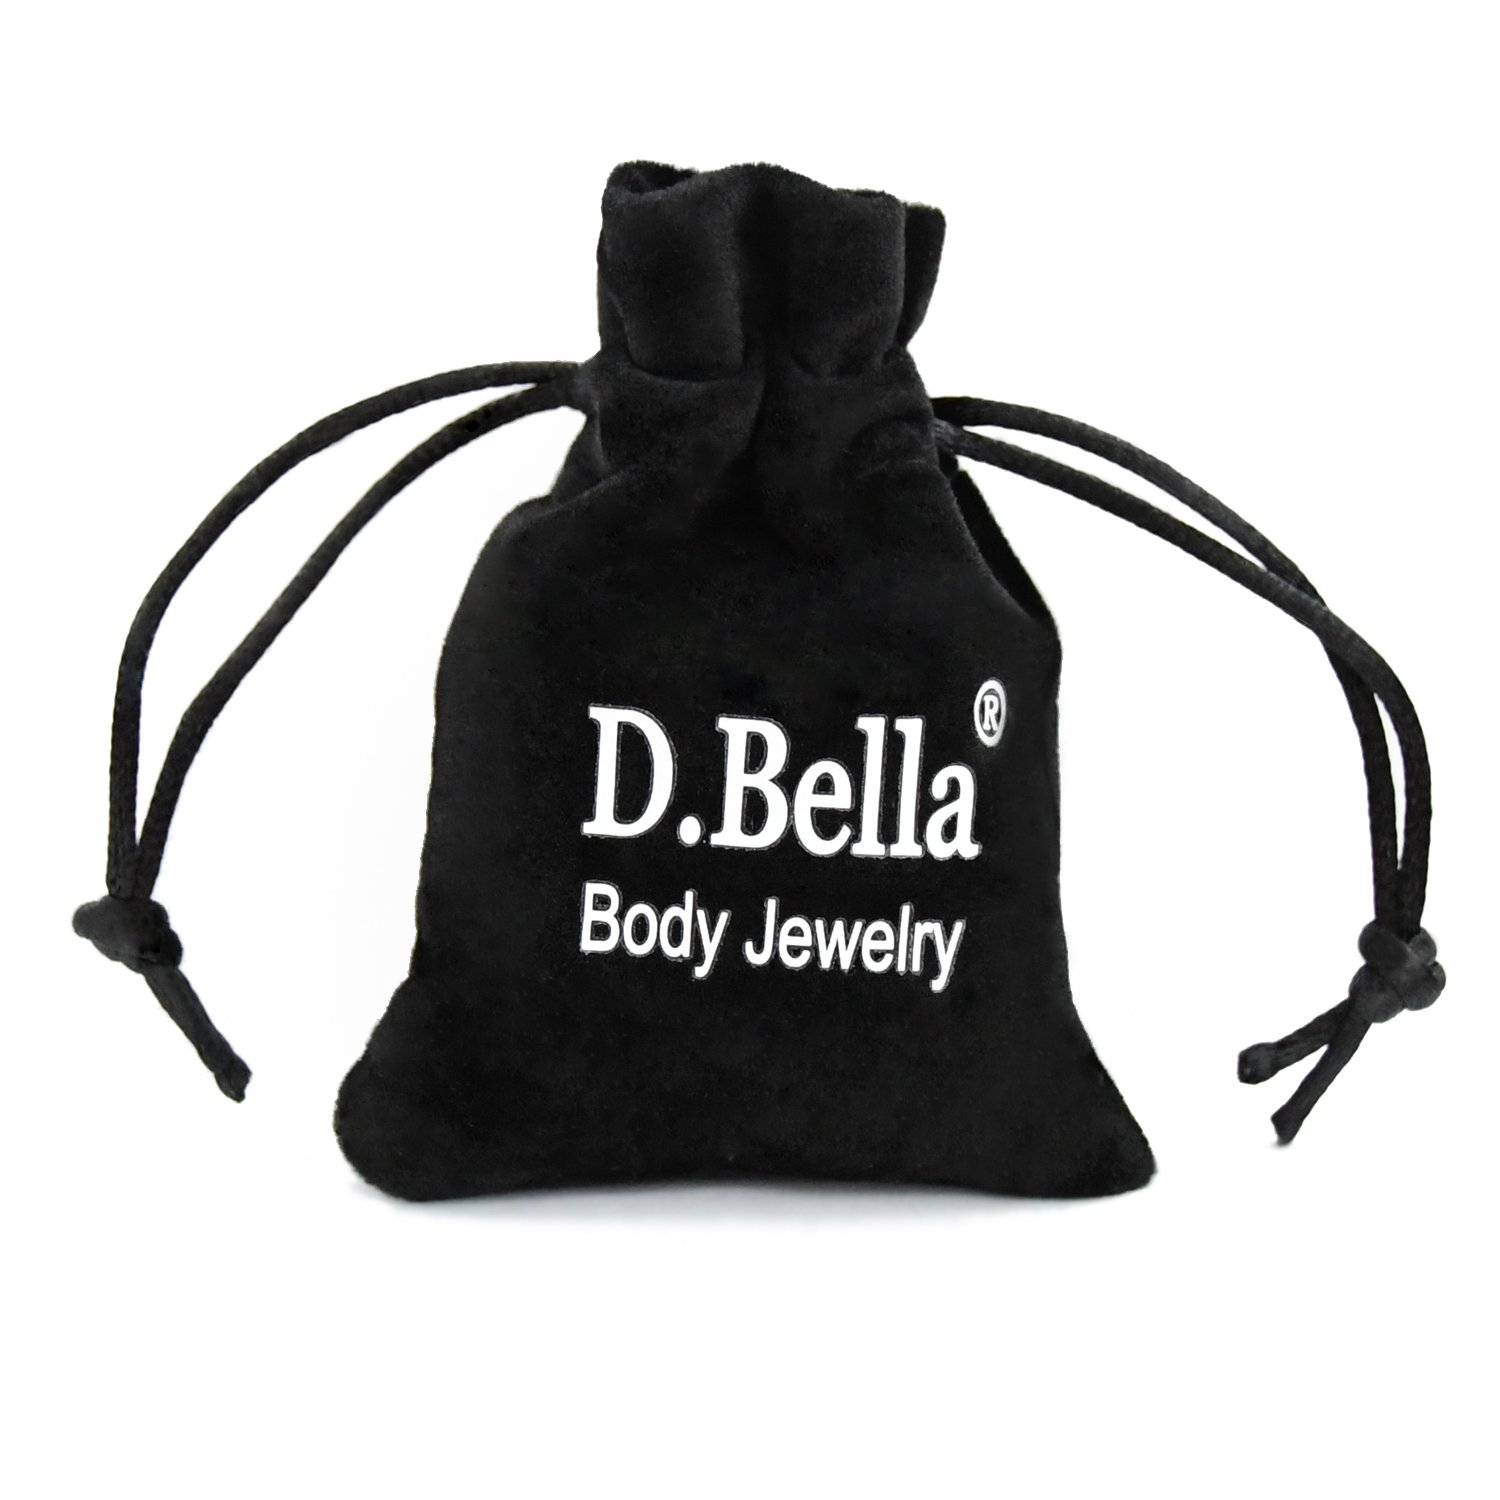 D.Bella 2pcs PA Ring 316L Surgical Steel Spring Action Captive Bead Ring CBR 2G 4G 6G 8G 10G 12G 12mm 16mm Piercing Body Jewelry